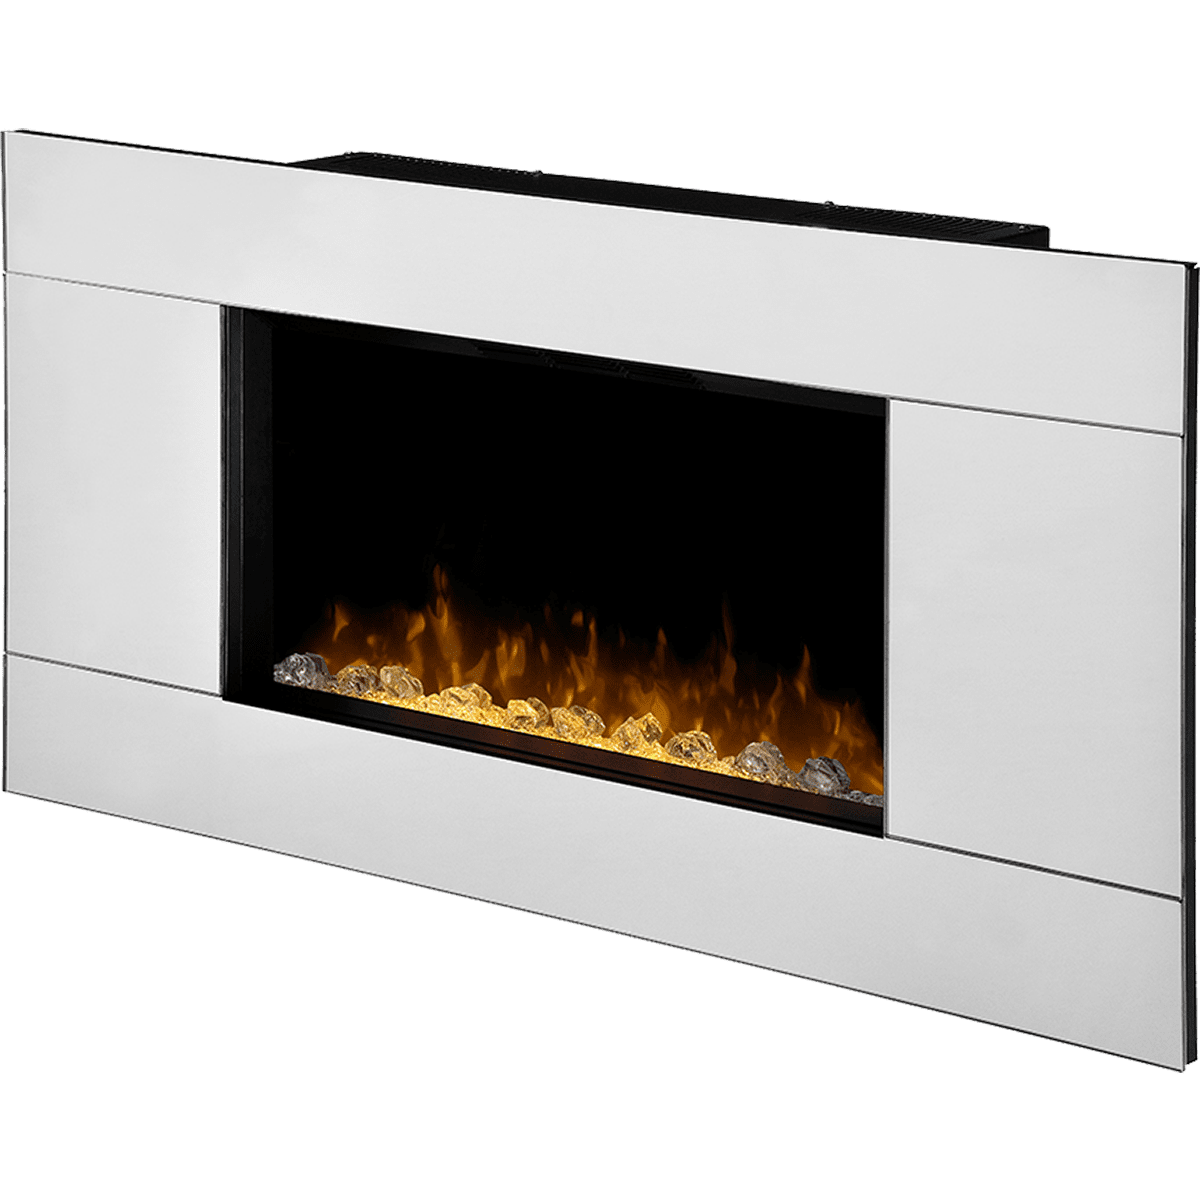 Dimplex Reflections Wall Mount Electric Fireplace - Dimplex Reflections Wall Mount Fireplace Sylvane